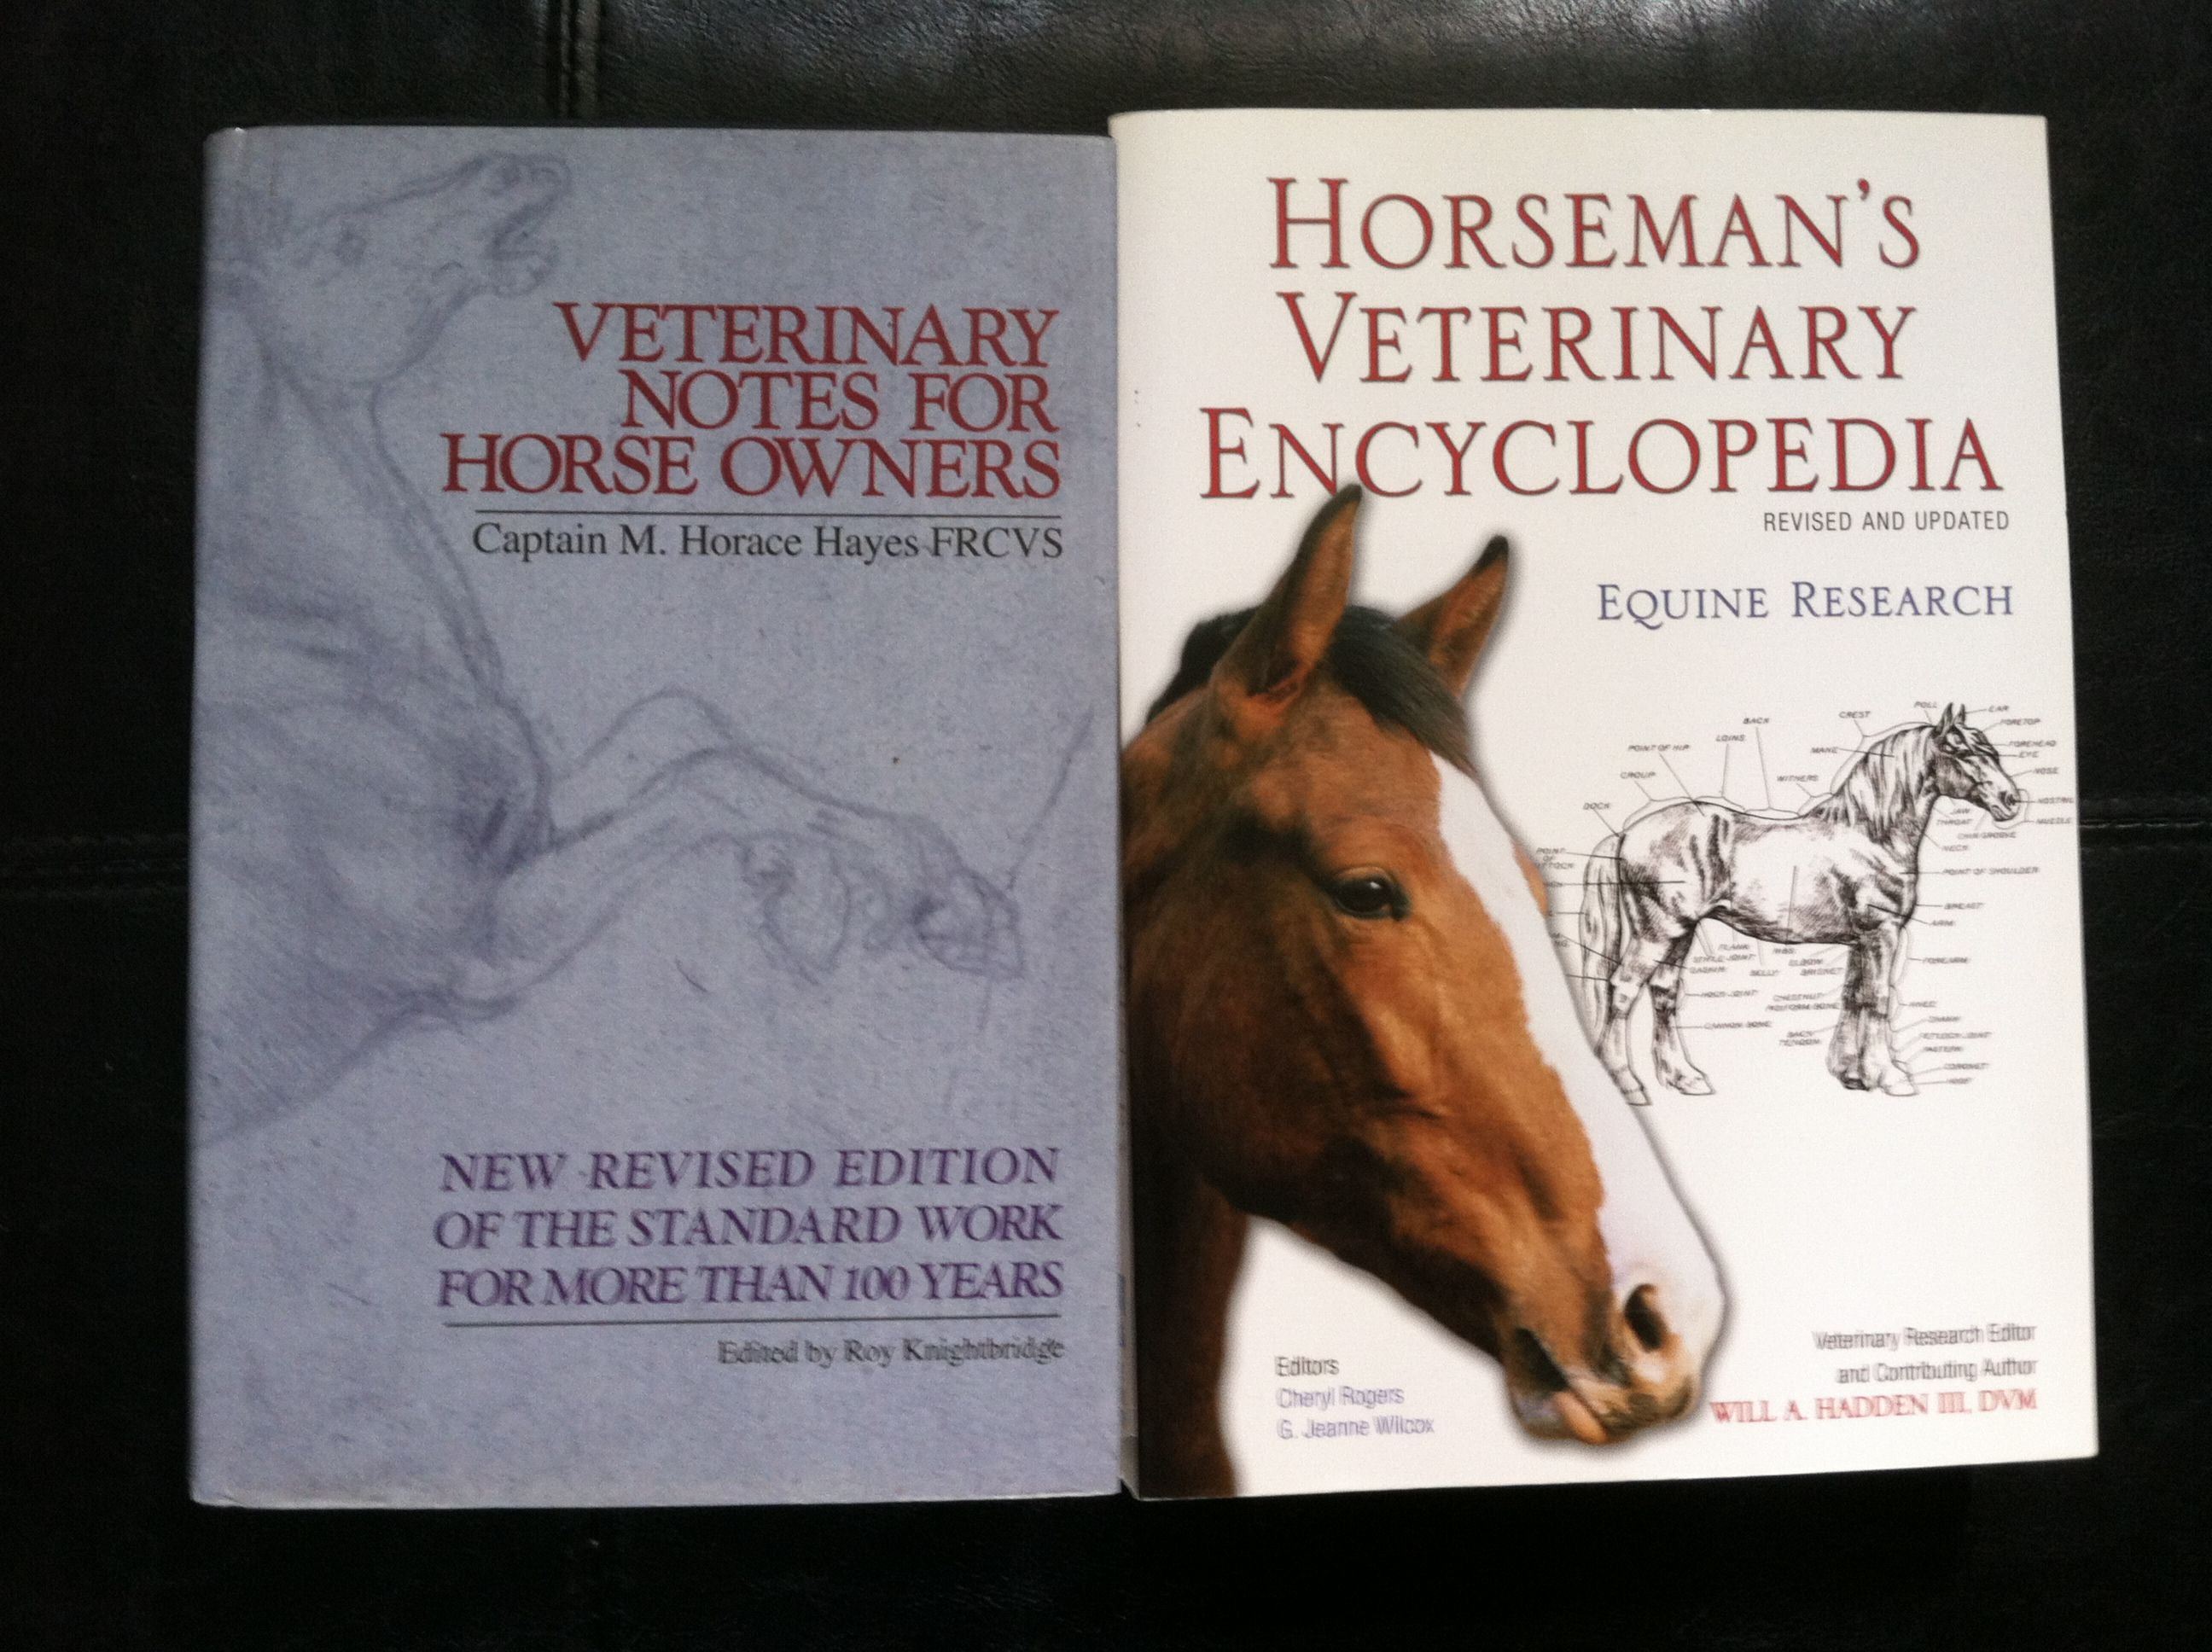 Equine Veterinary Book Set Both In Like New Condition Available As A Set For 40 Or Individually Veterinary Notes Horse Books Equine Veterinary Horse Owner